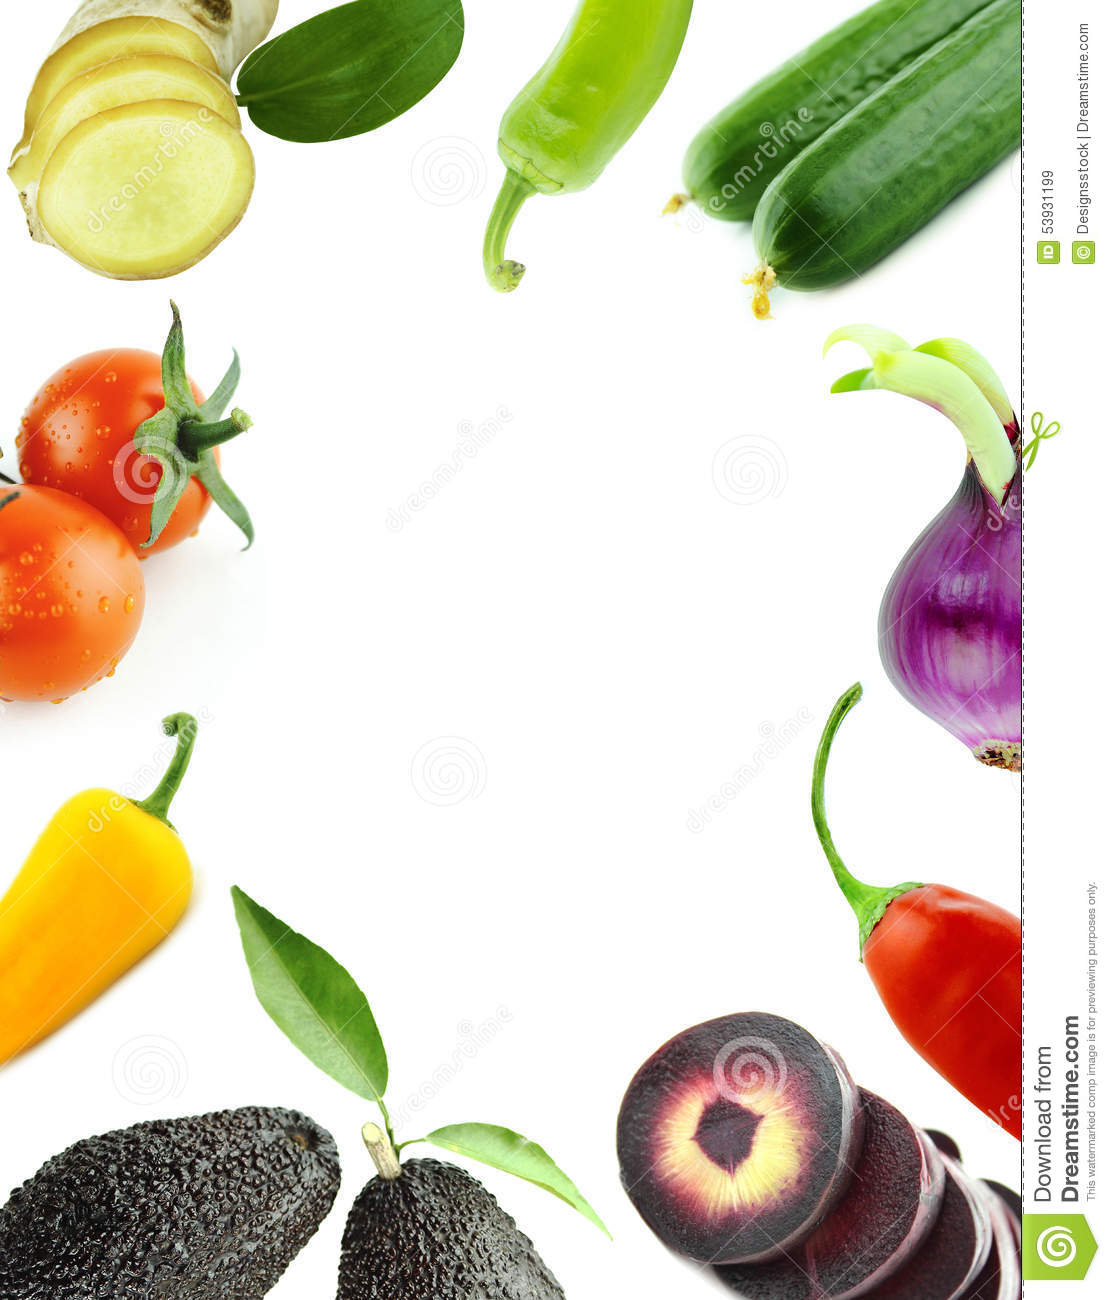 Photo Designer To Add Artist: Healthy Organic Vegetables And Fruits Stock Photo